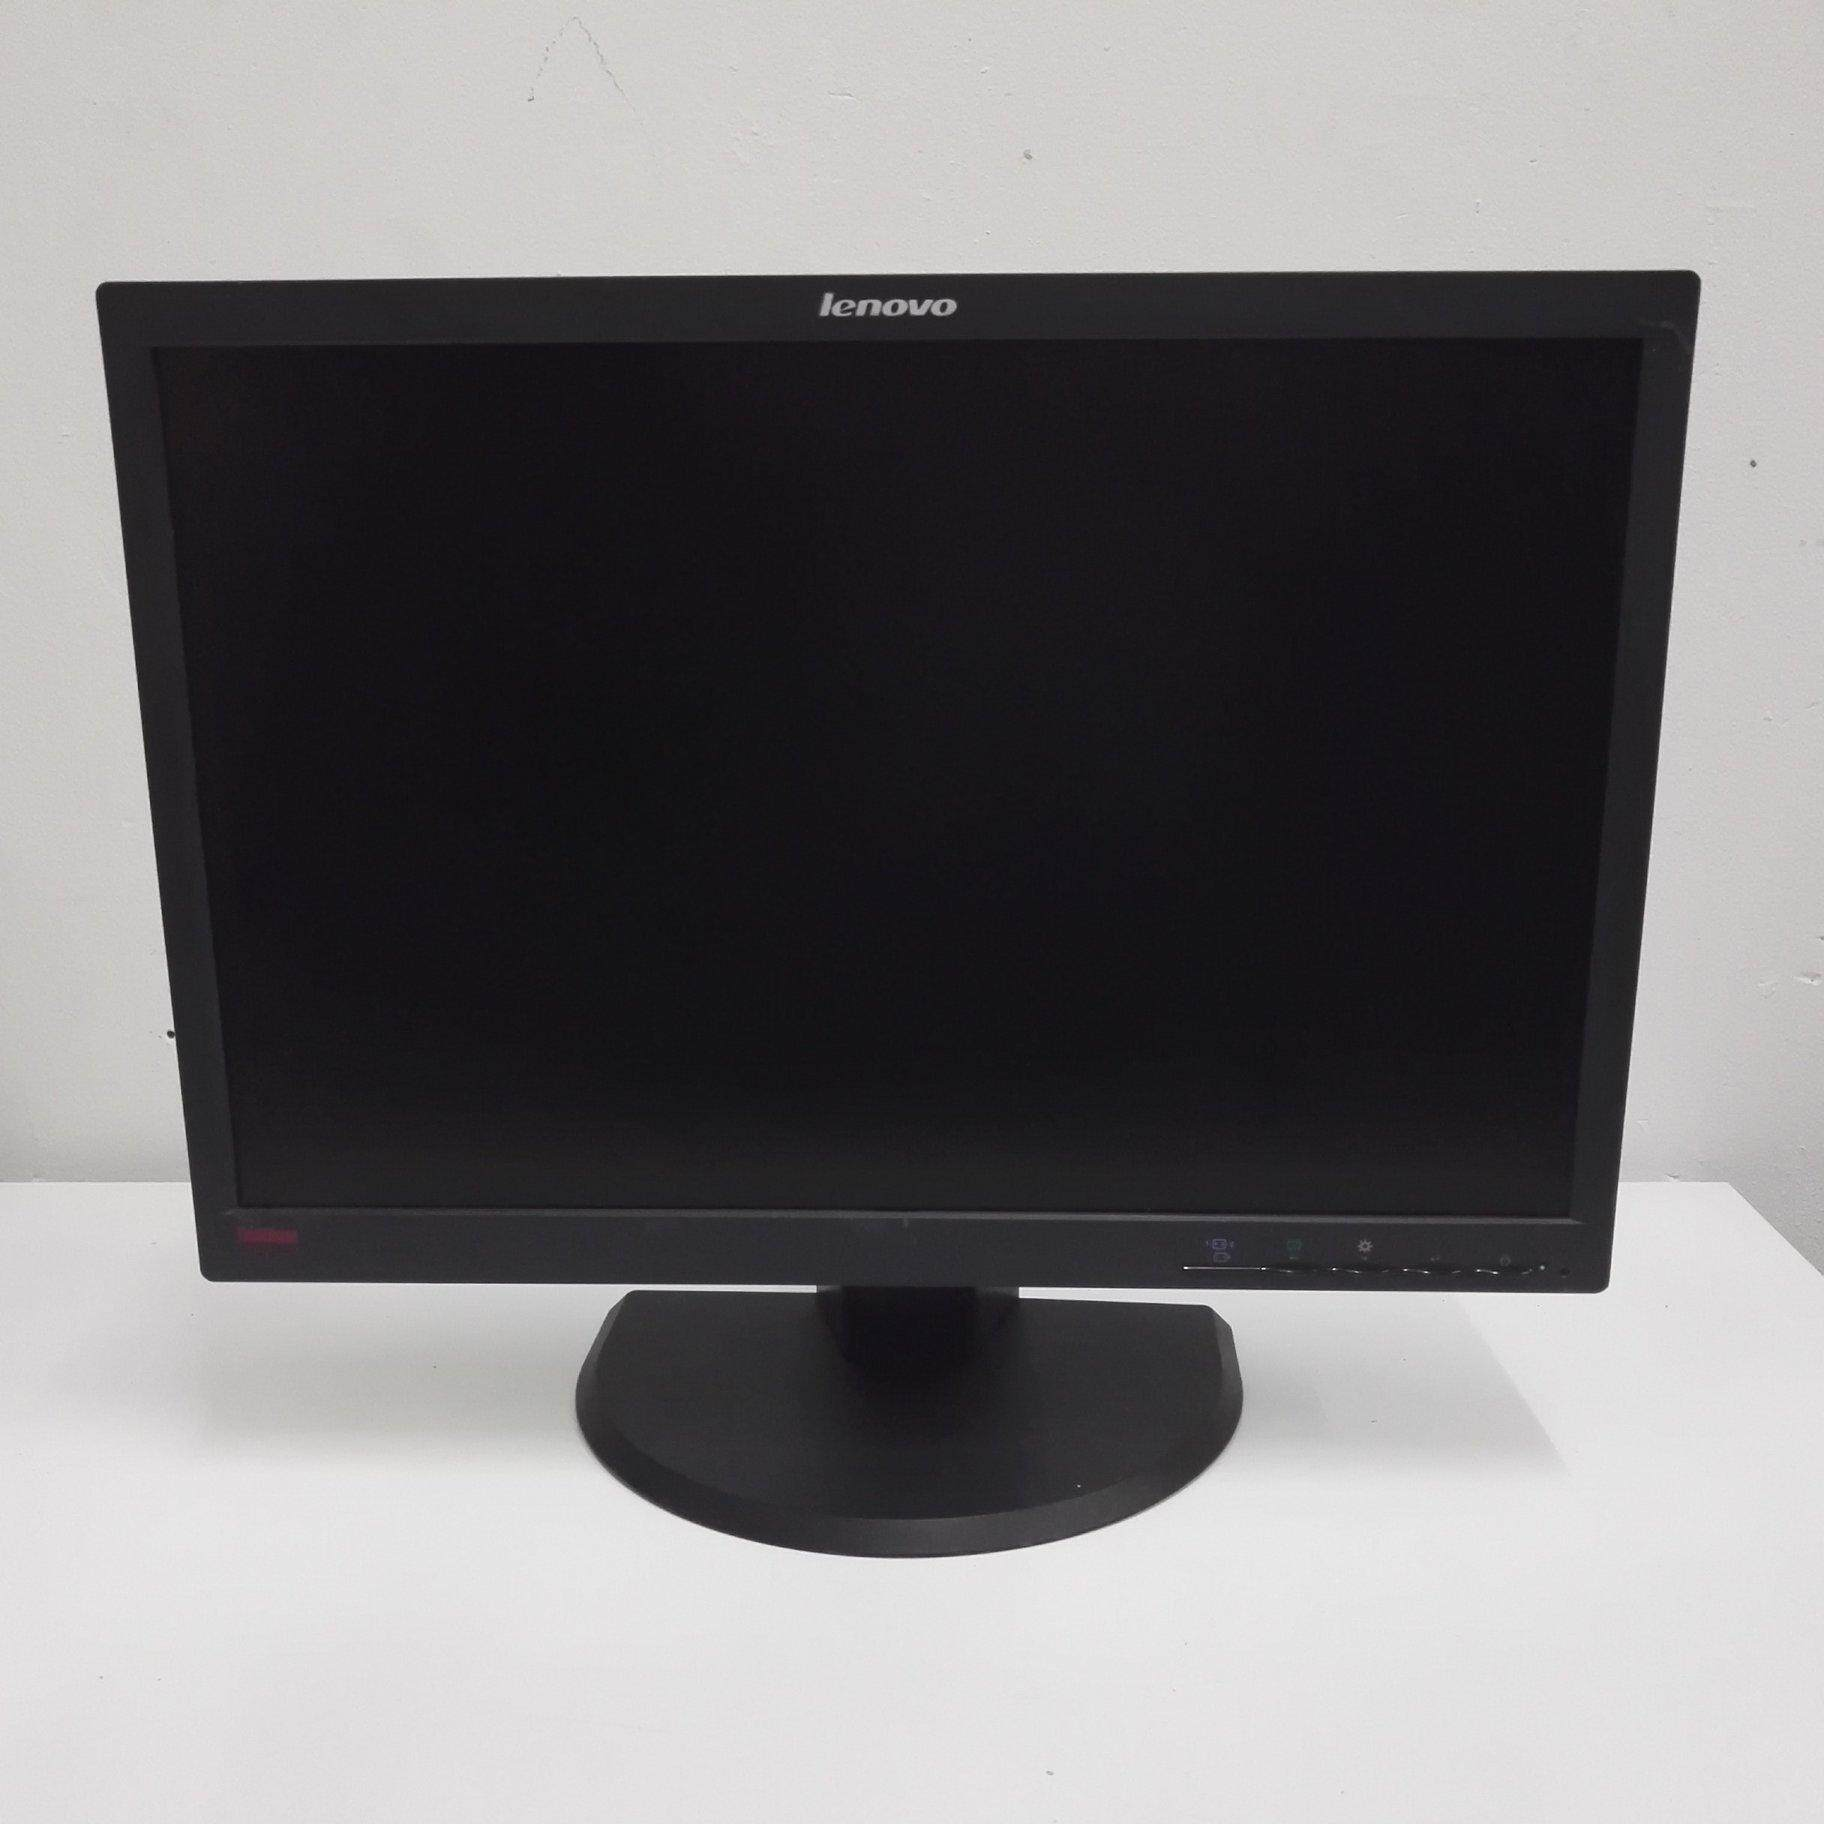 Branded 22 Inch Widescreen Monitor (a Grade) By Rentsave.